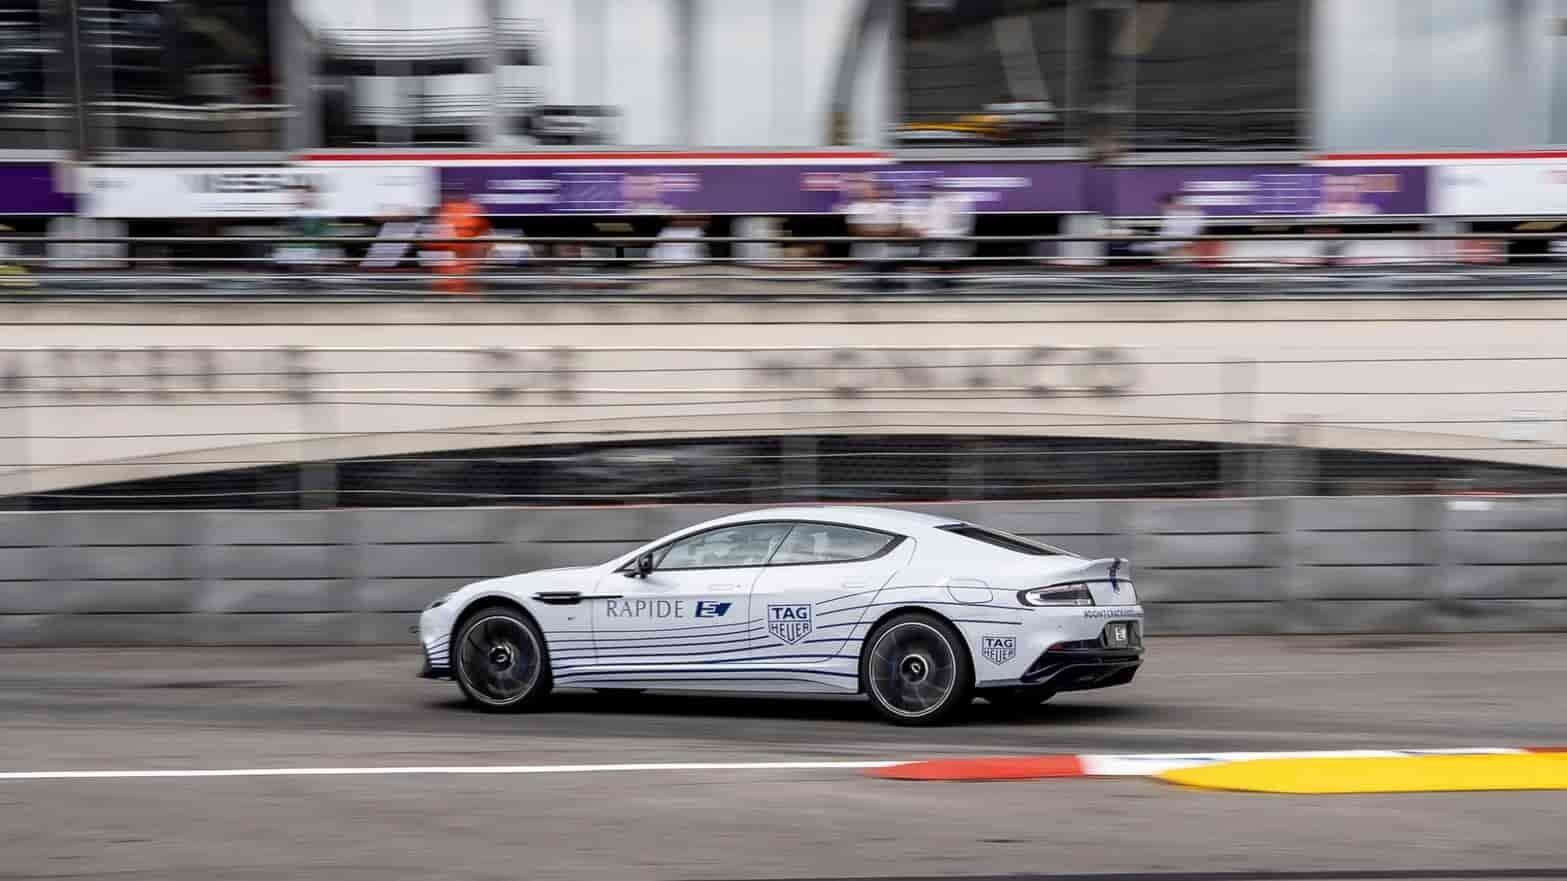 The Aston Martin Rapide E has raced around Monaco